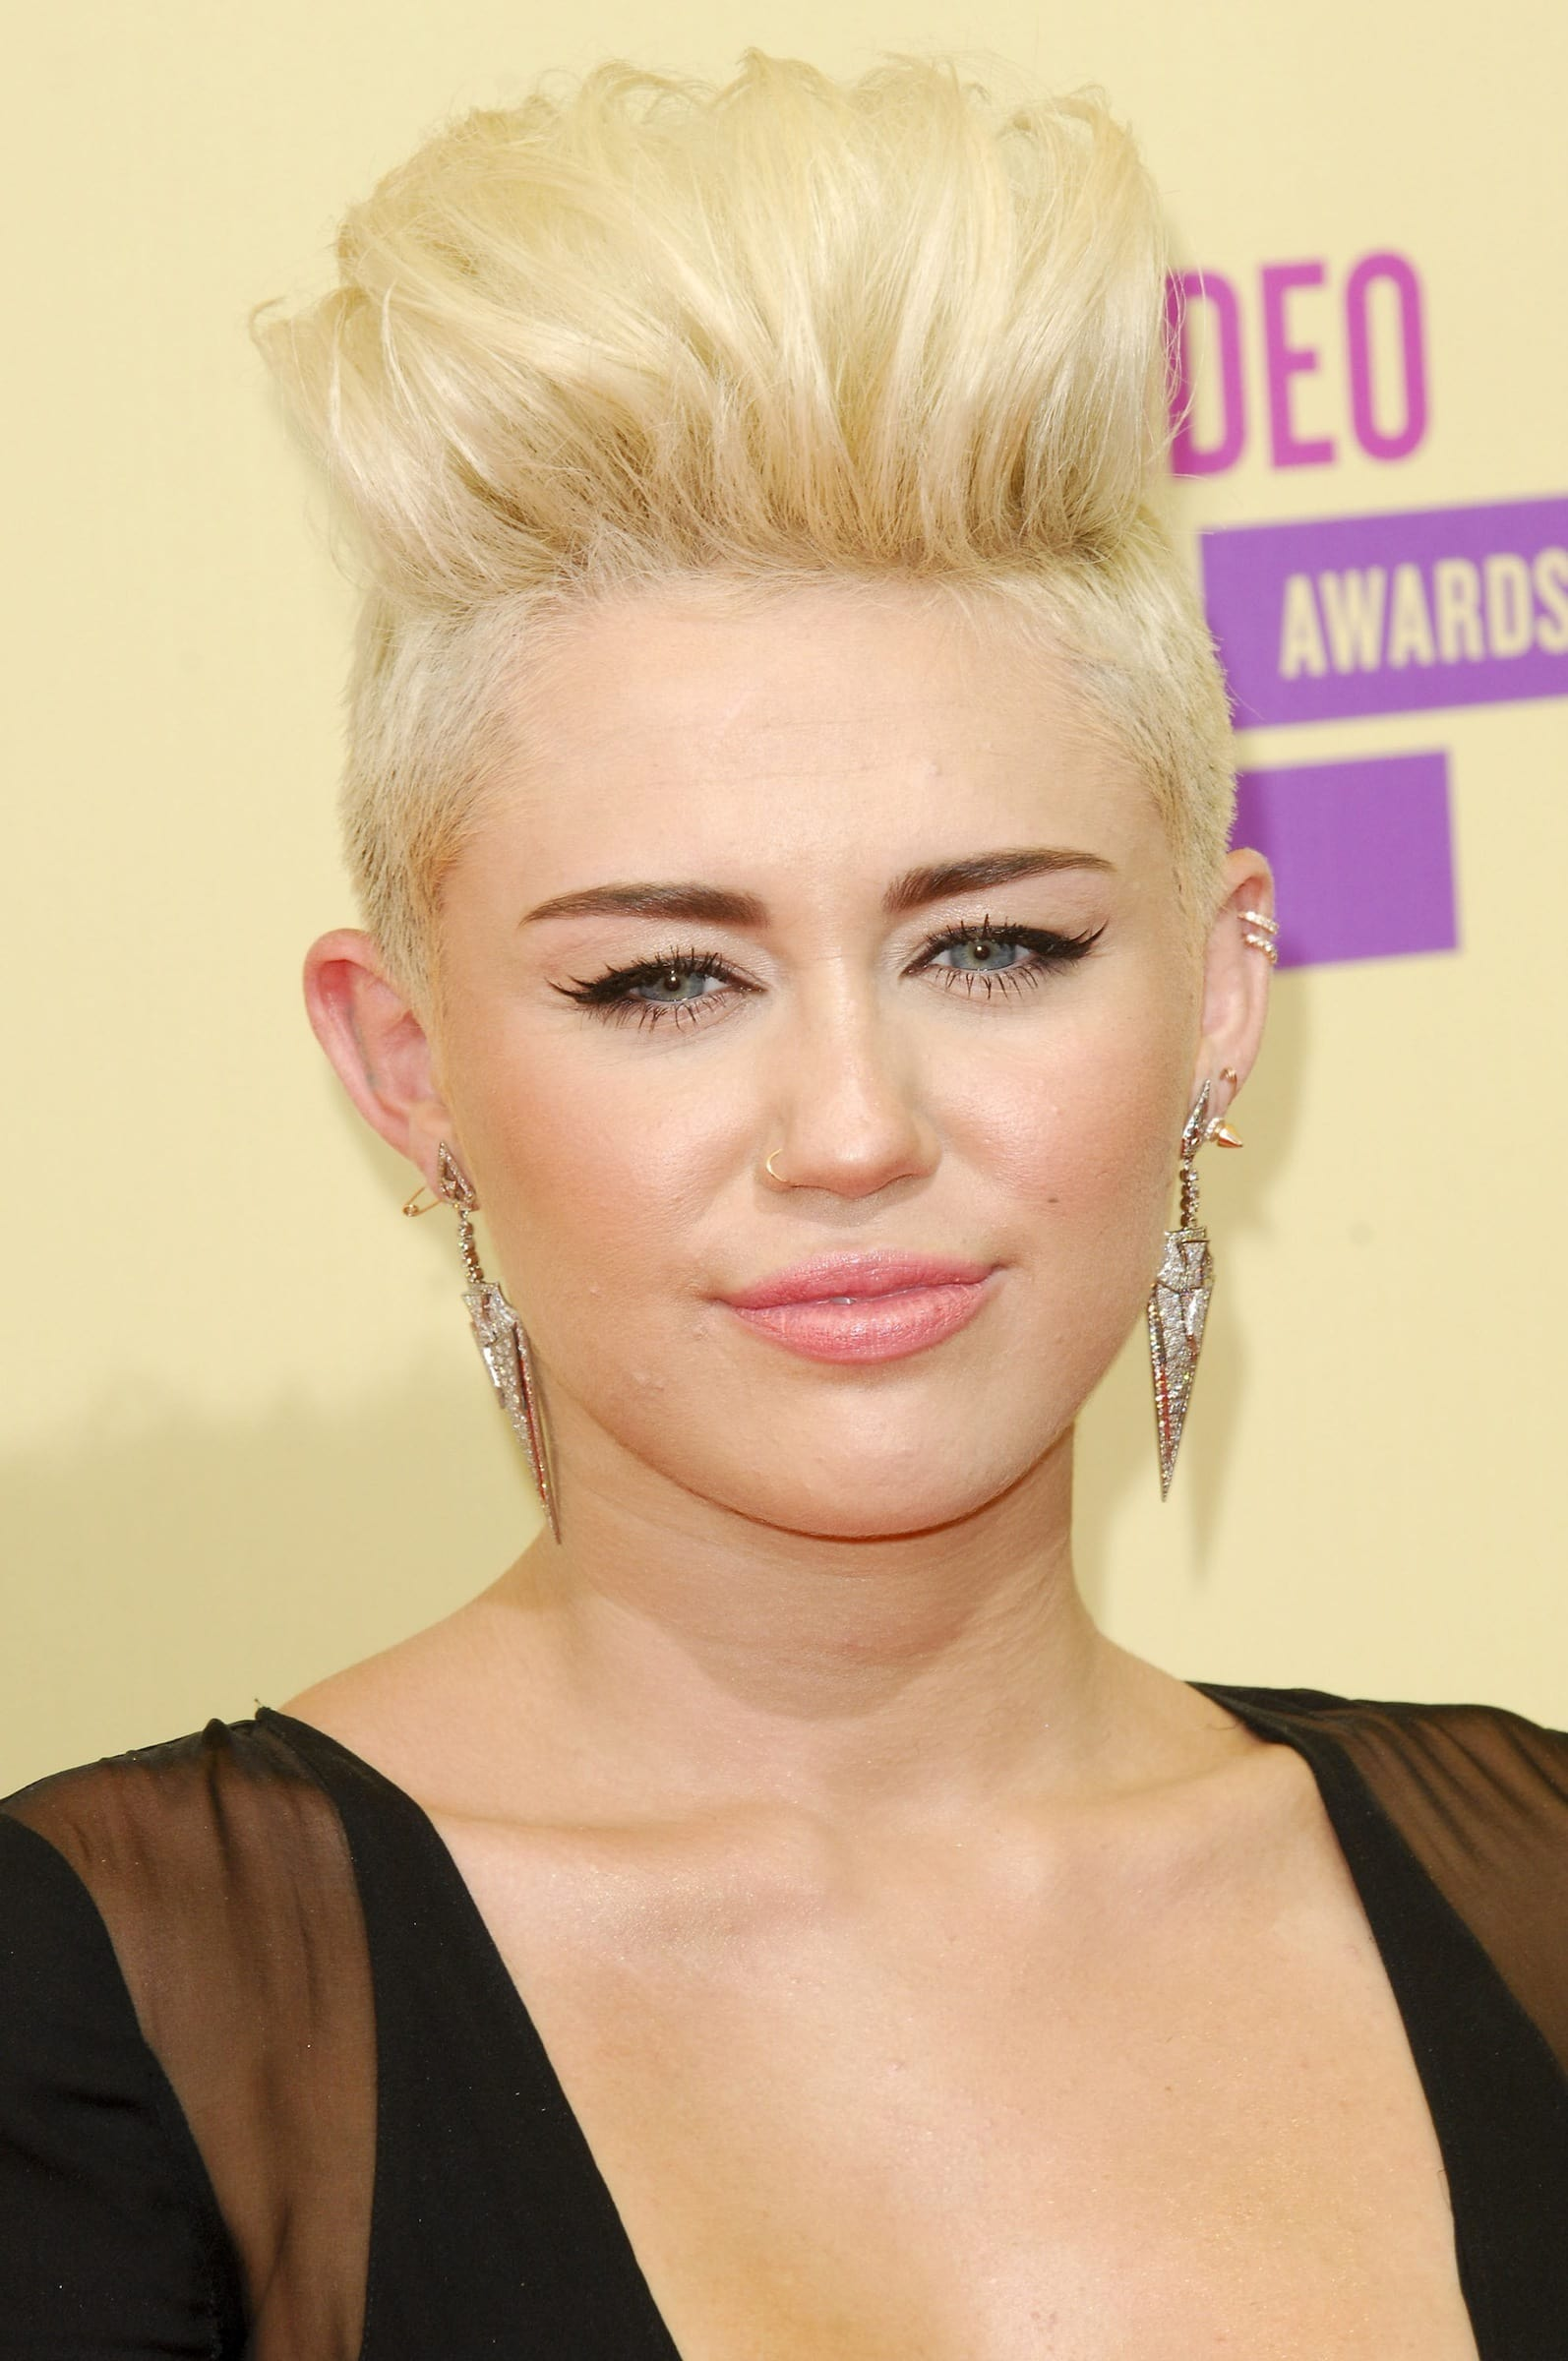 Miley Cyrus Blonde Hair Pic The Hollywood Gossip